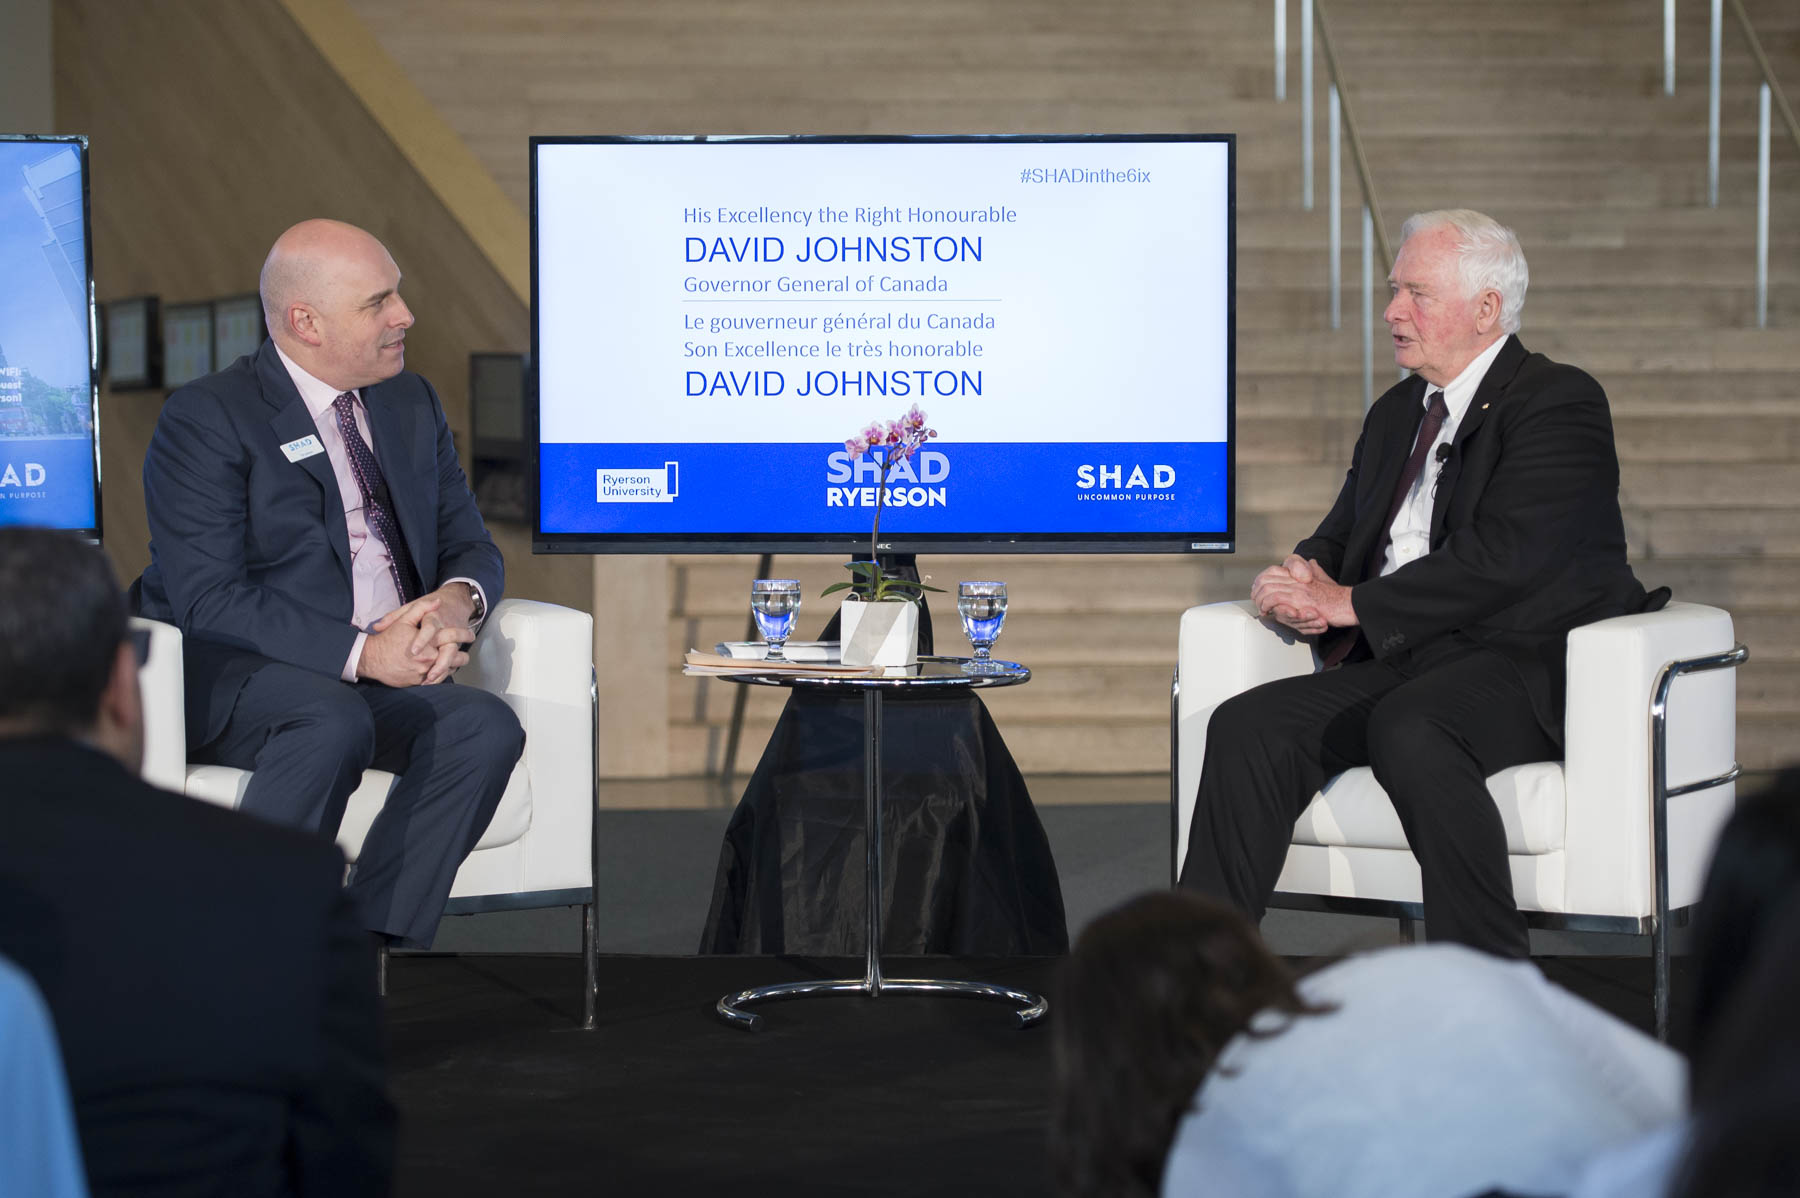 Later, the Governor General and Tim Jackson, President and CEO of SHAD, had a fireside chat on innovation with students attending the 2017 SHAD program at Ryerson University.